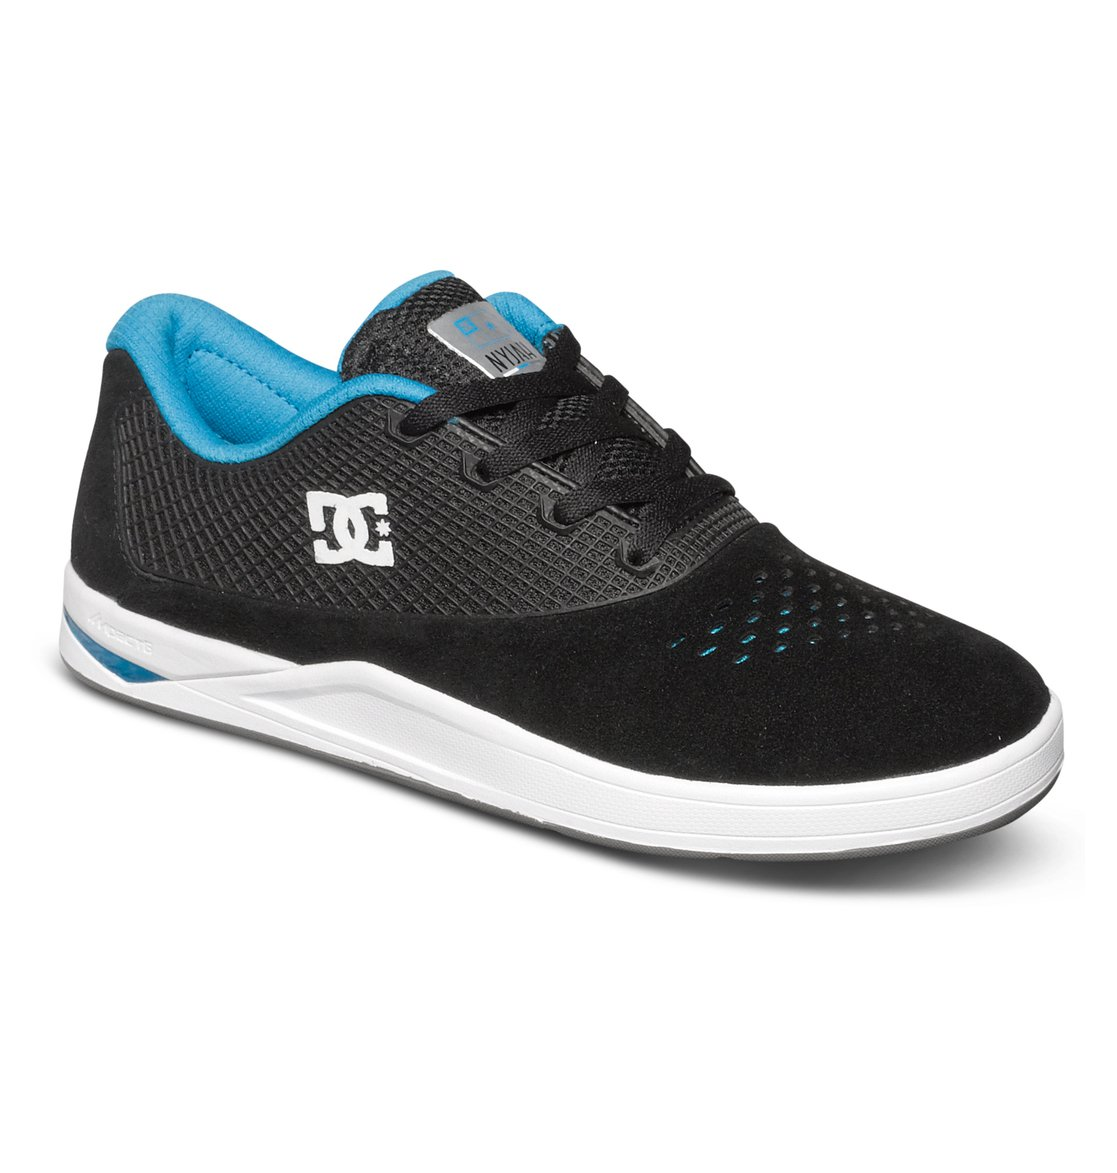 DC® recognizes the fusion between art and skateboarding, taking footwear to the next level. Delivering uncompromising comfort, durability, and eye-catching fashion, DC is the source for everyday and technical skateboarding footwear.